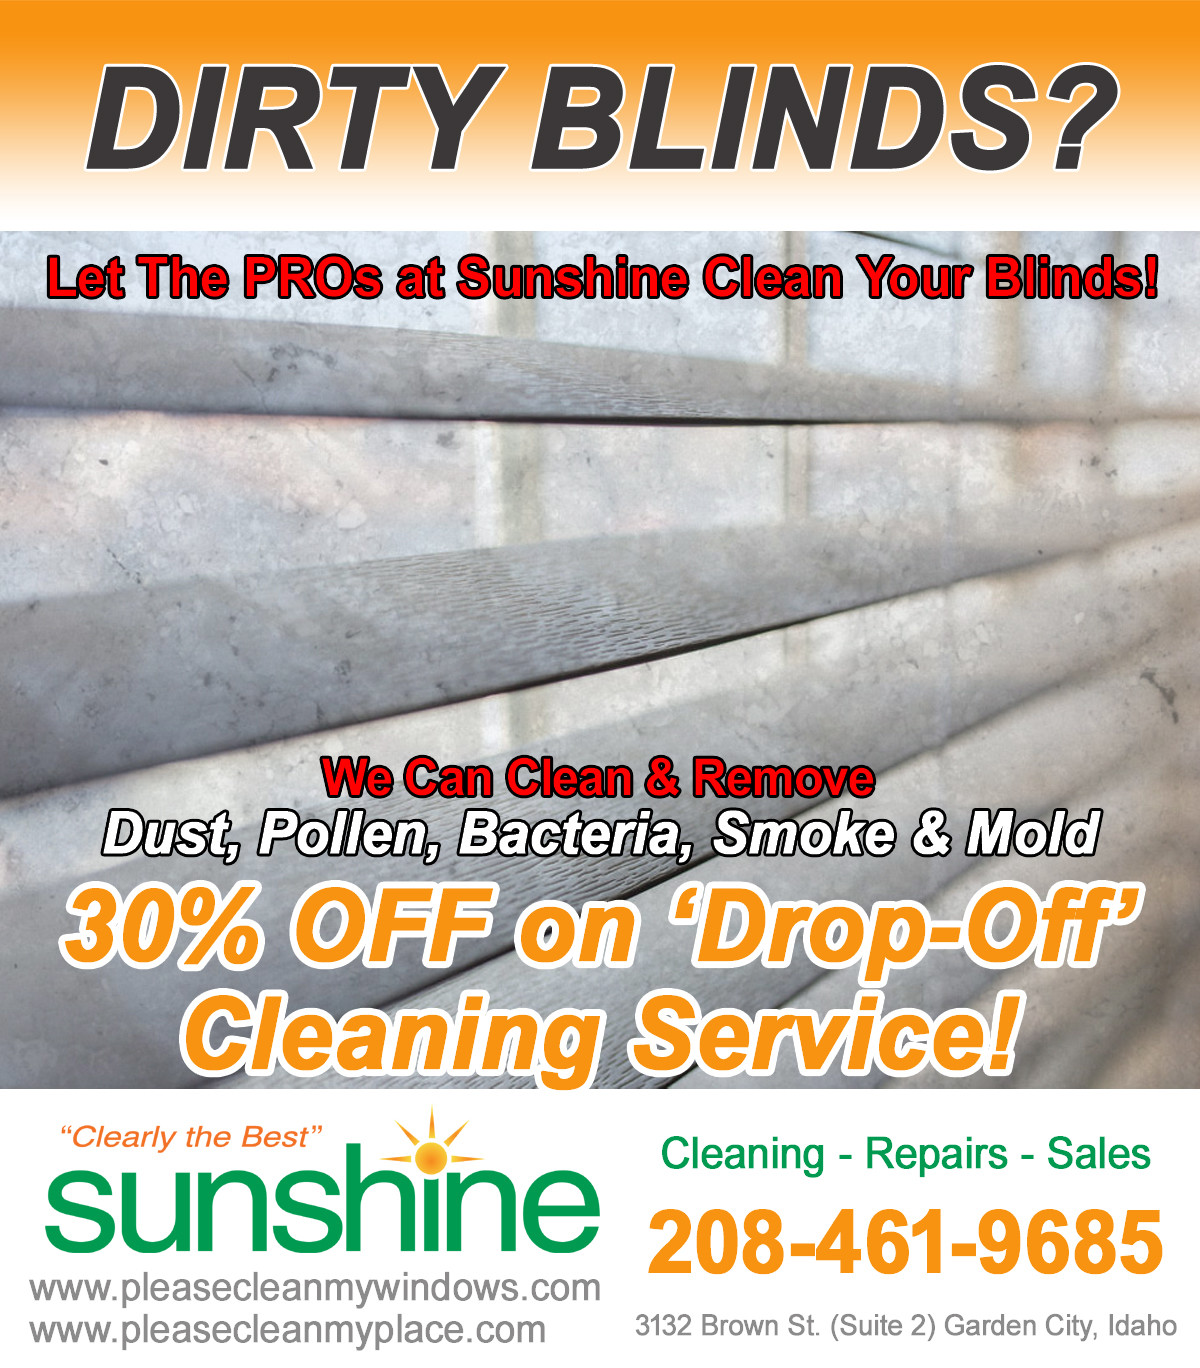 Choose From Our Basic Blind Cleaning Service Or Ultrasonic You Can Call Office And We Will Help Answer Questions To